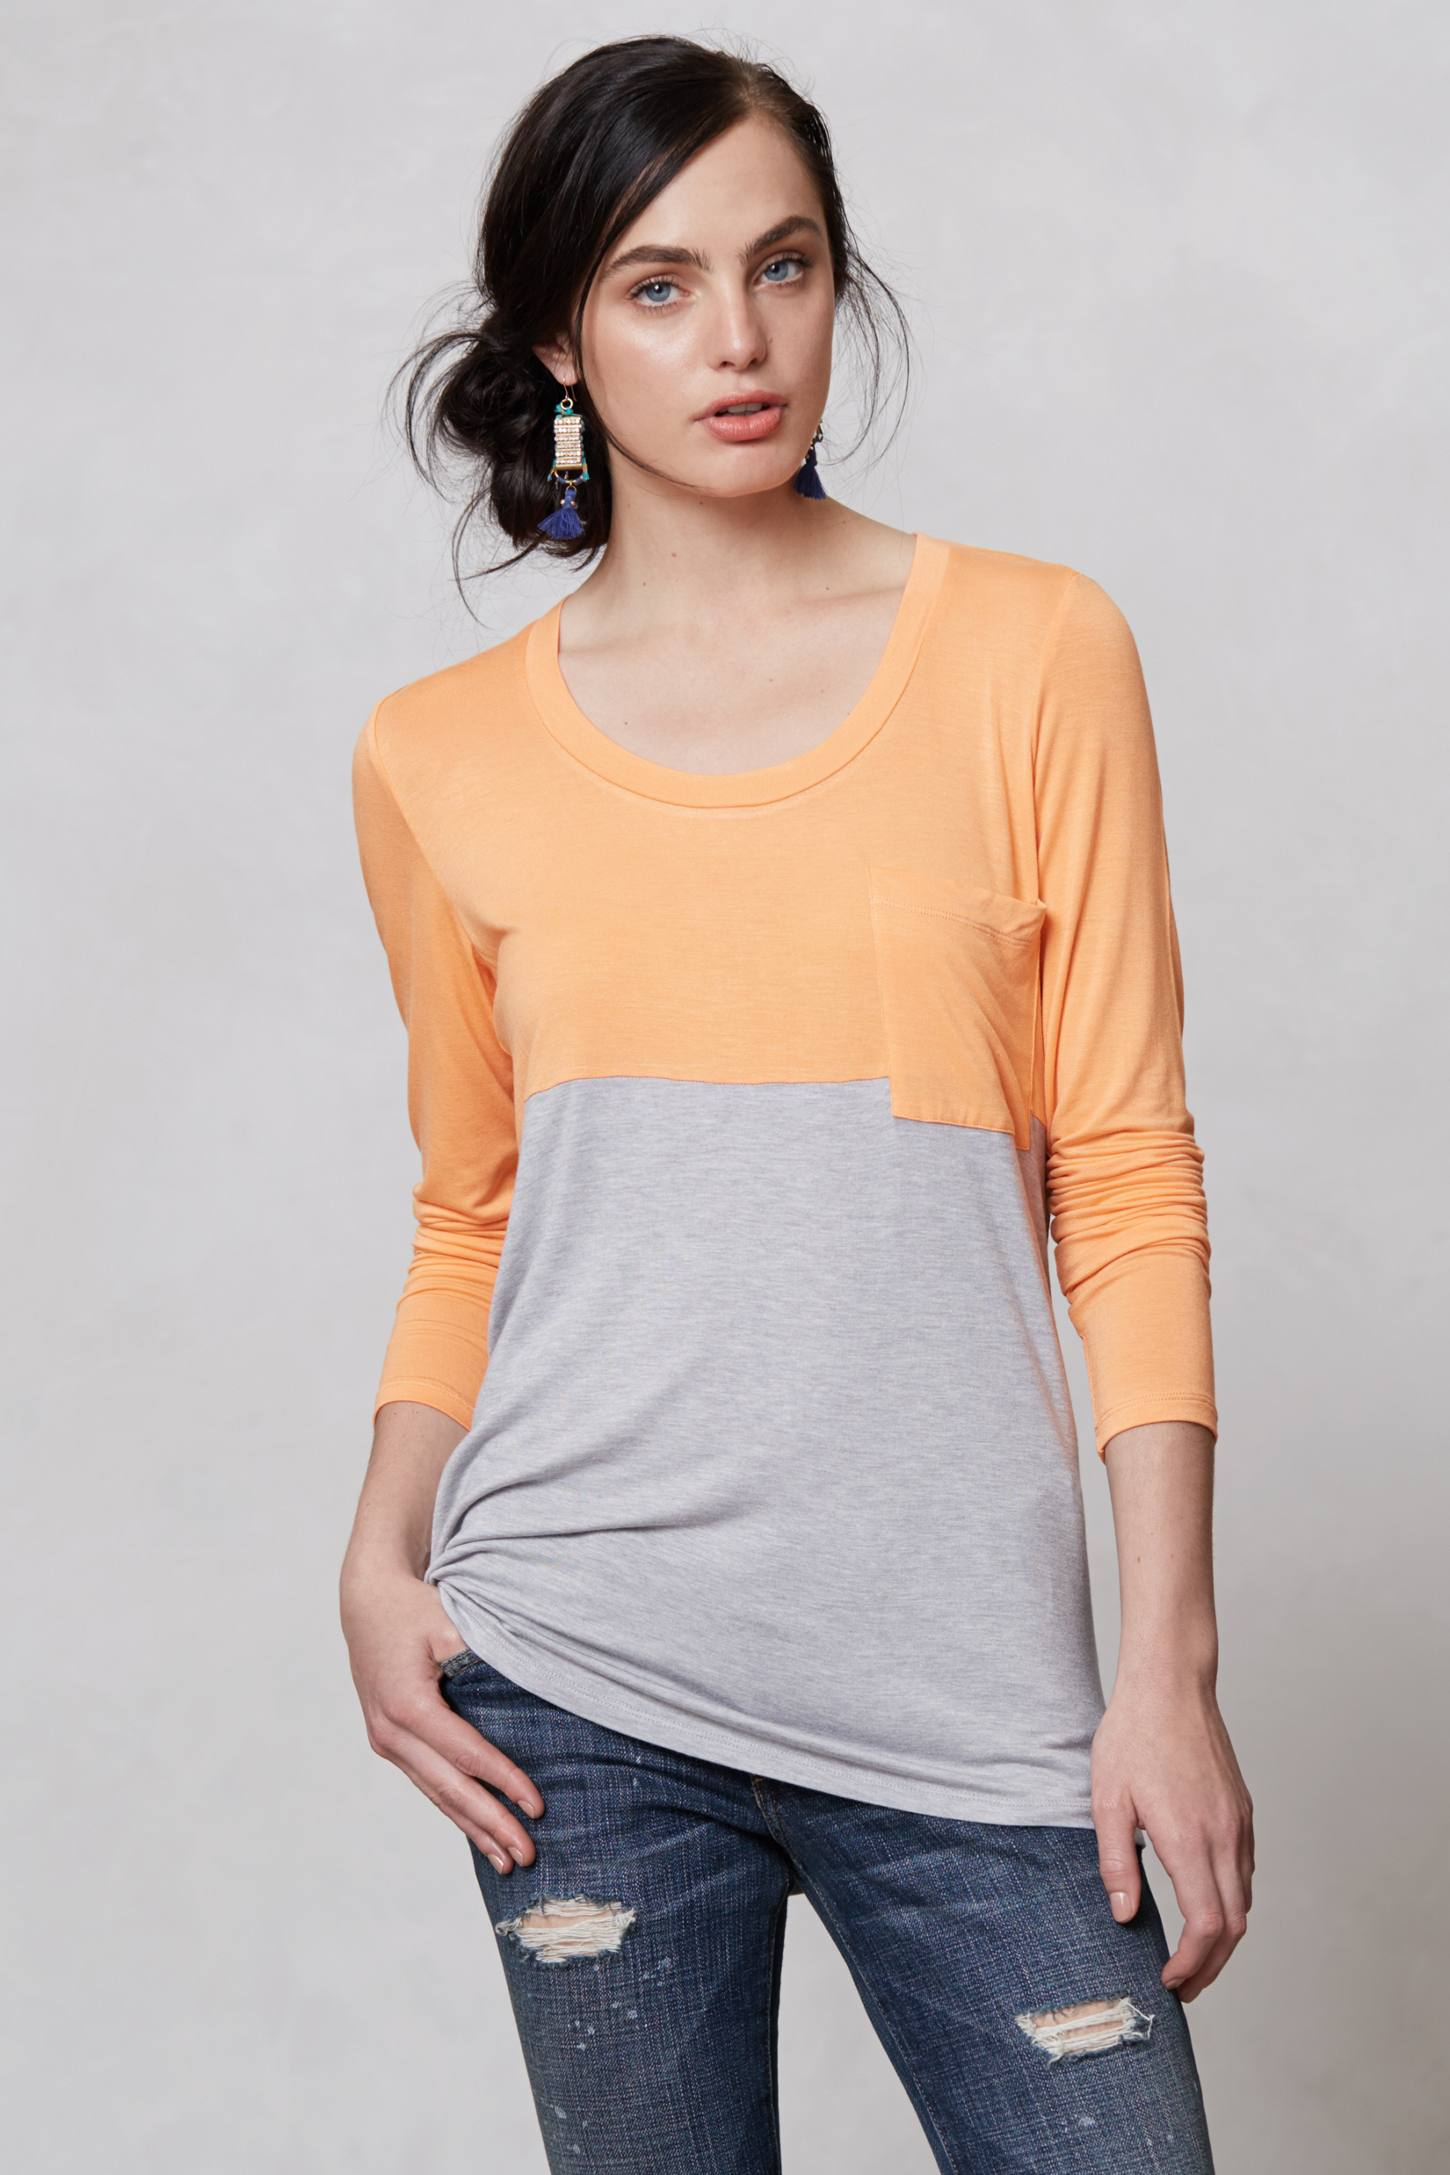 Duo Colorblocked Top